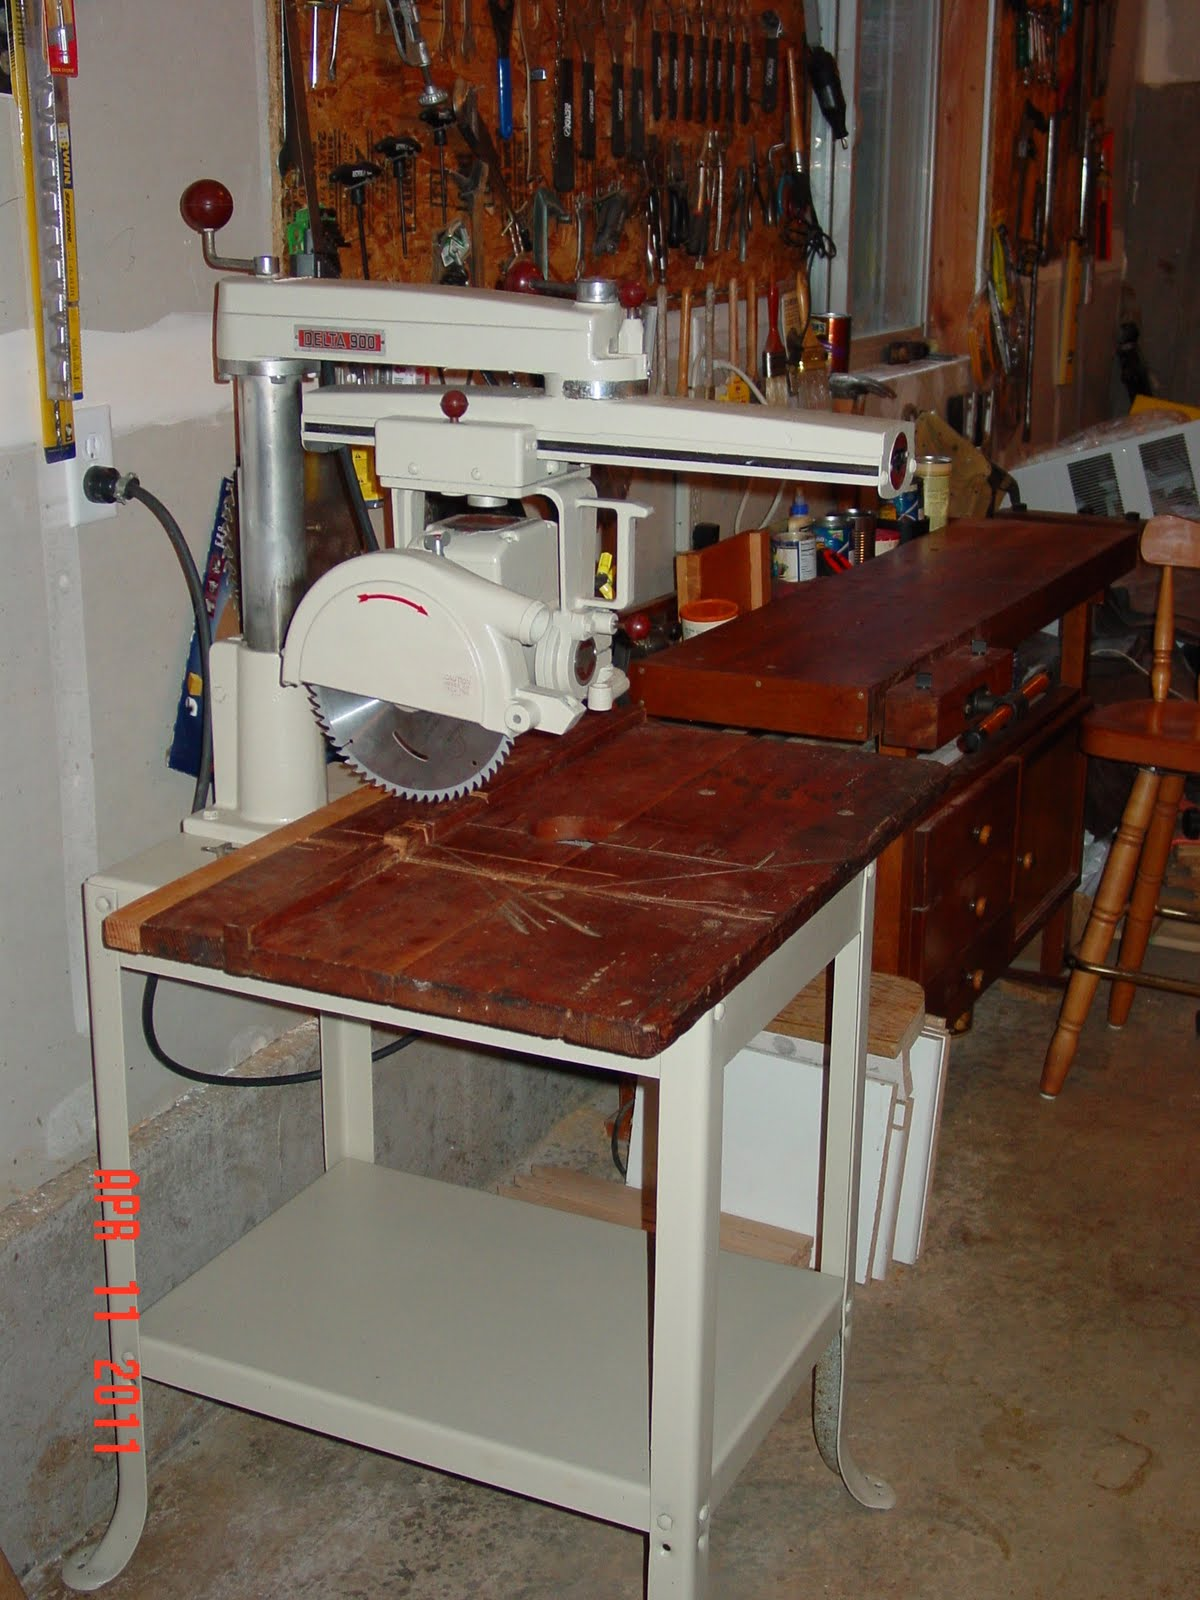 Don's Early Light: Old WoodWorking Machinery